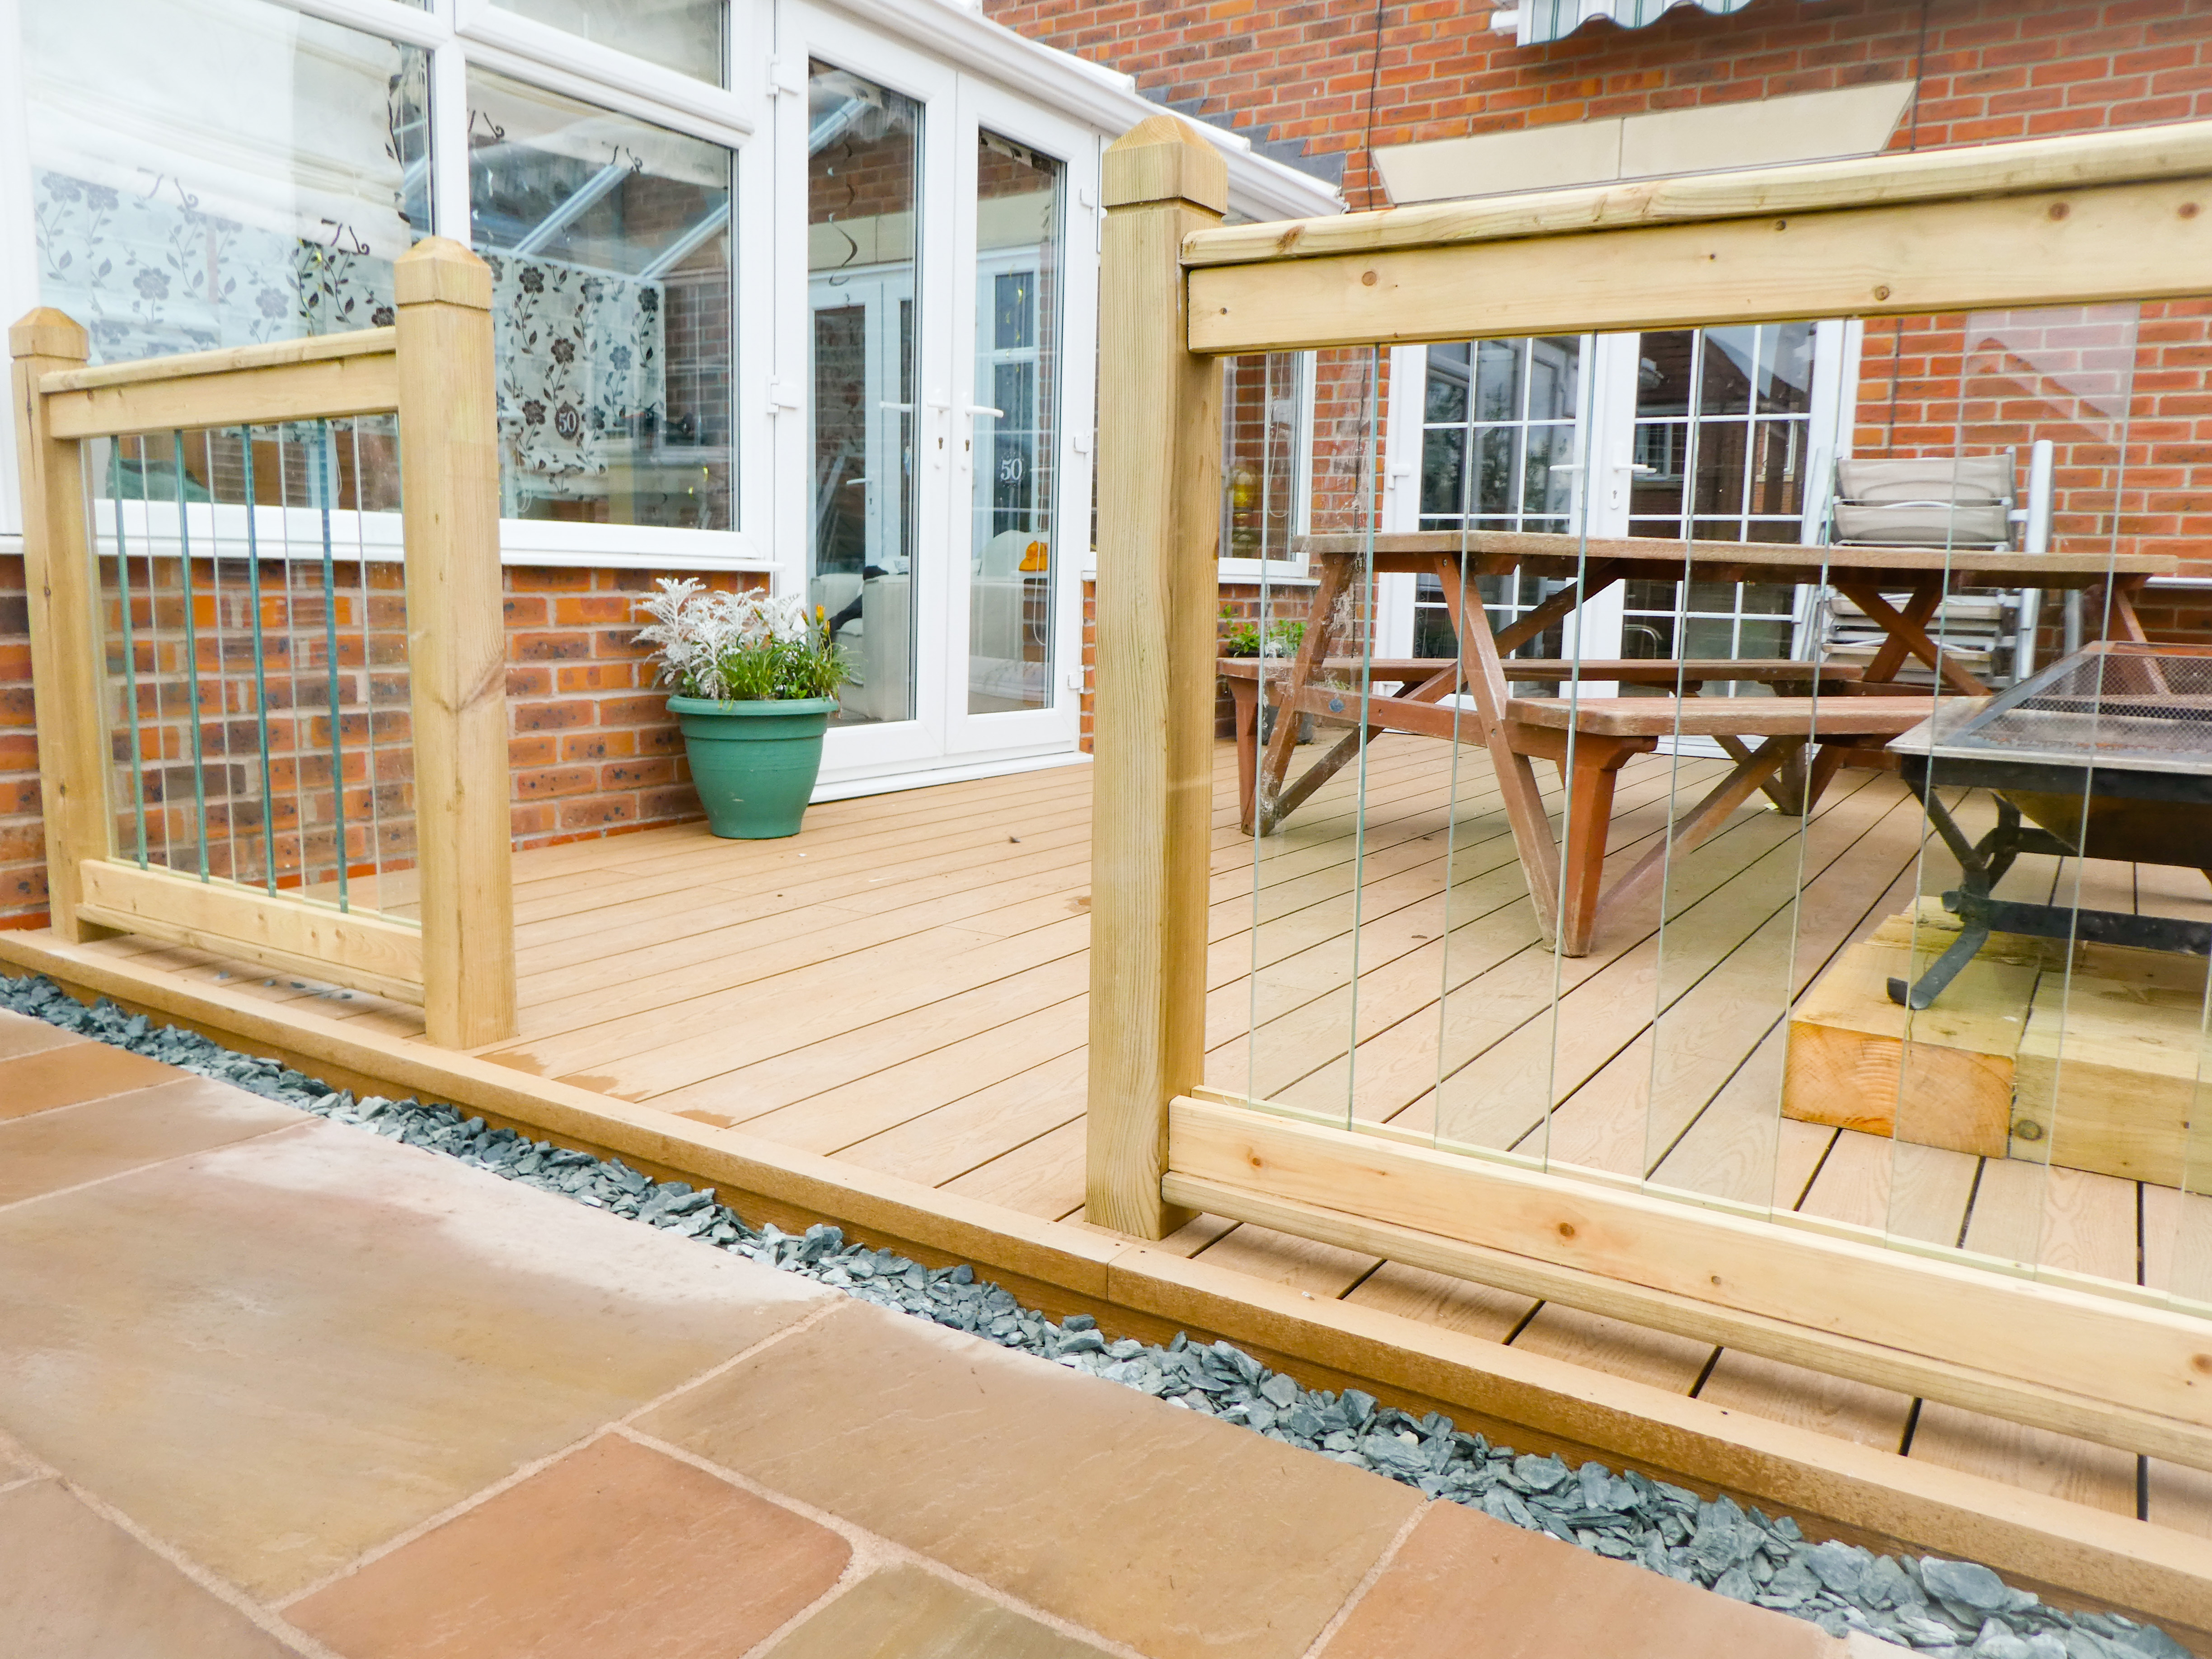 After Landscaping - Patio, Composite Decking